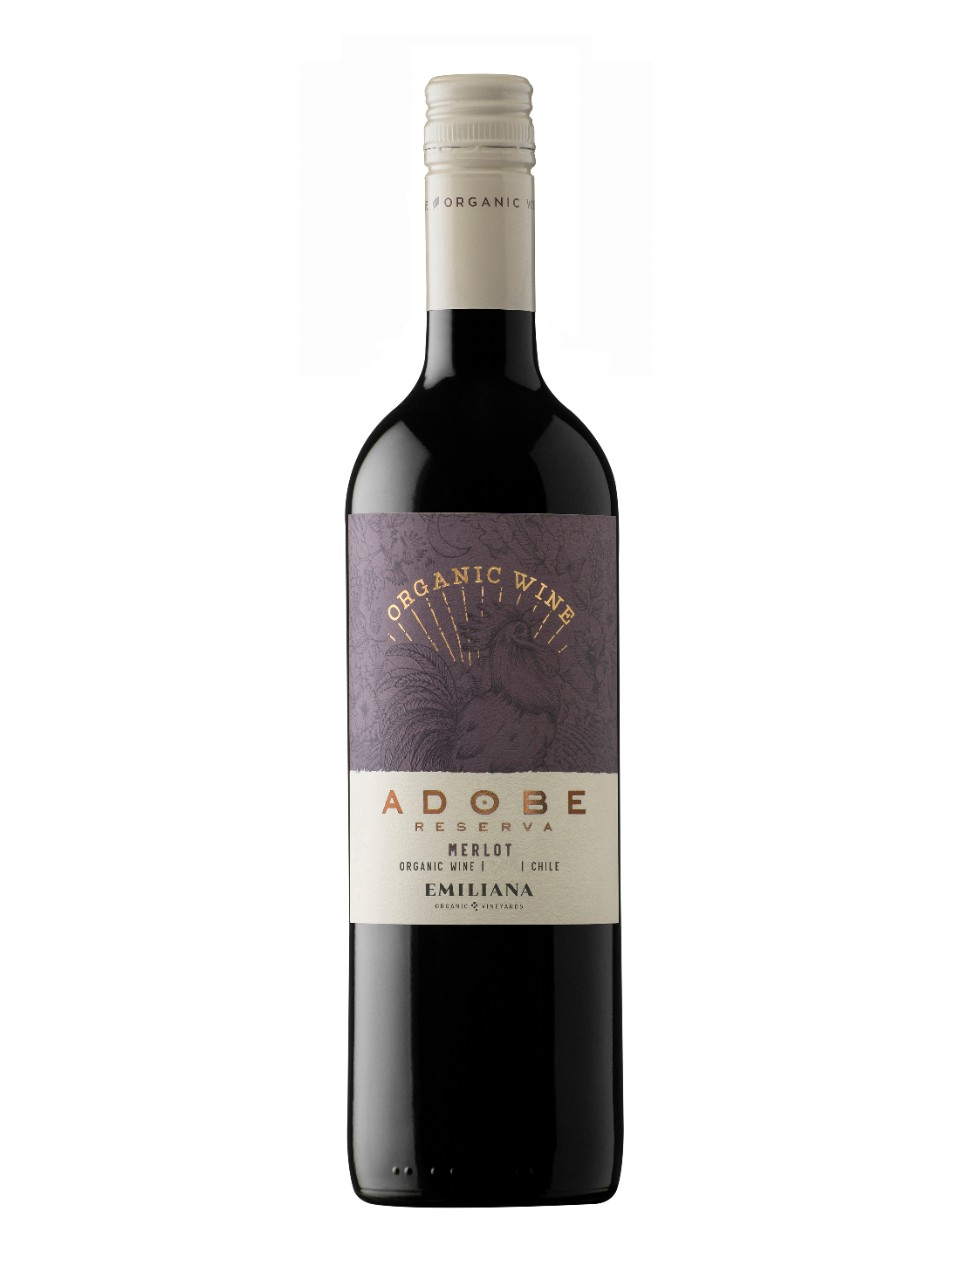 Image for Adobe Reserva Merlot Organic from LCBO